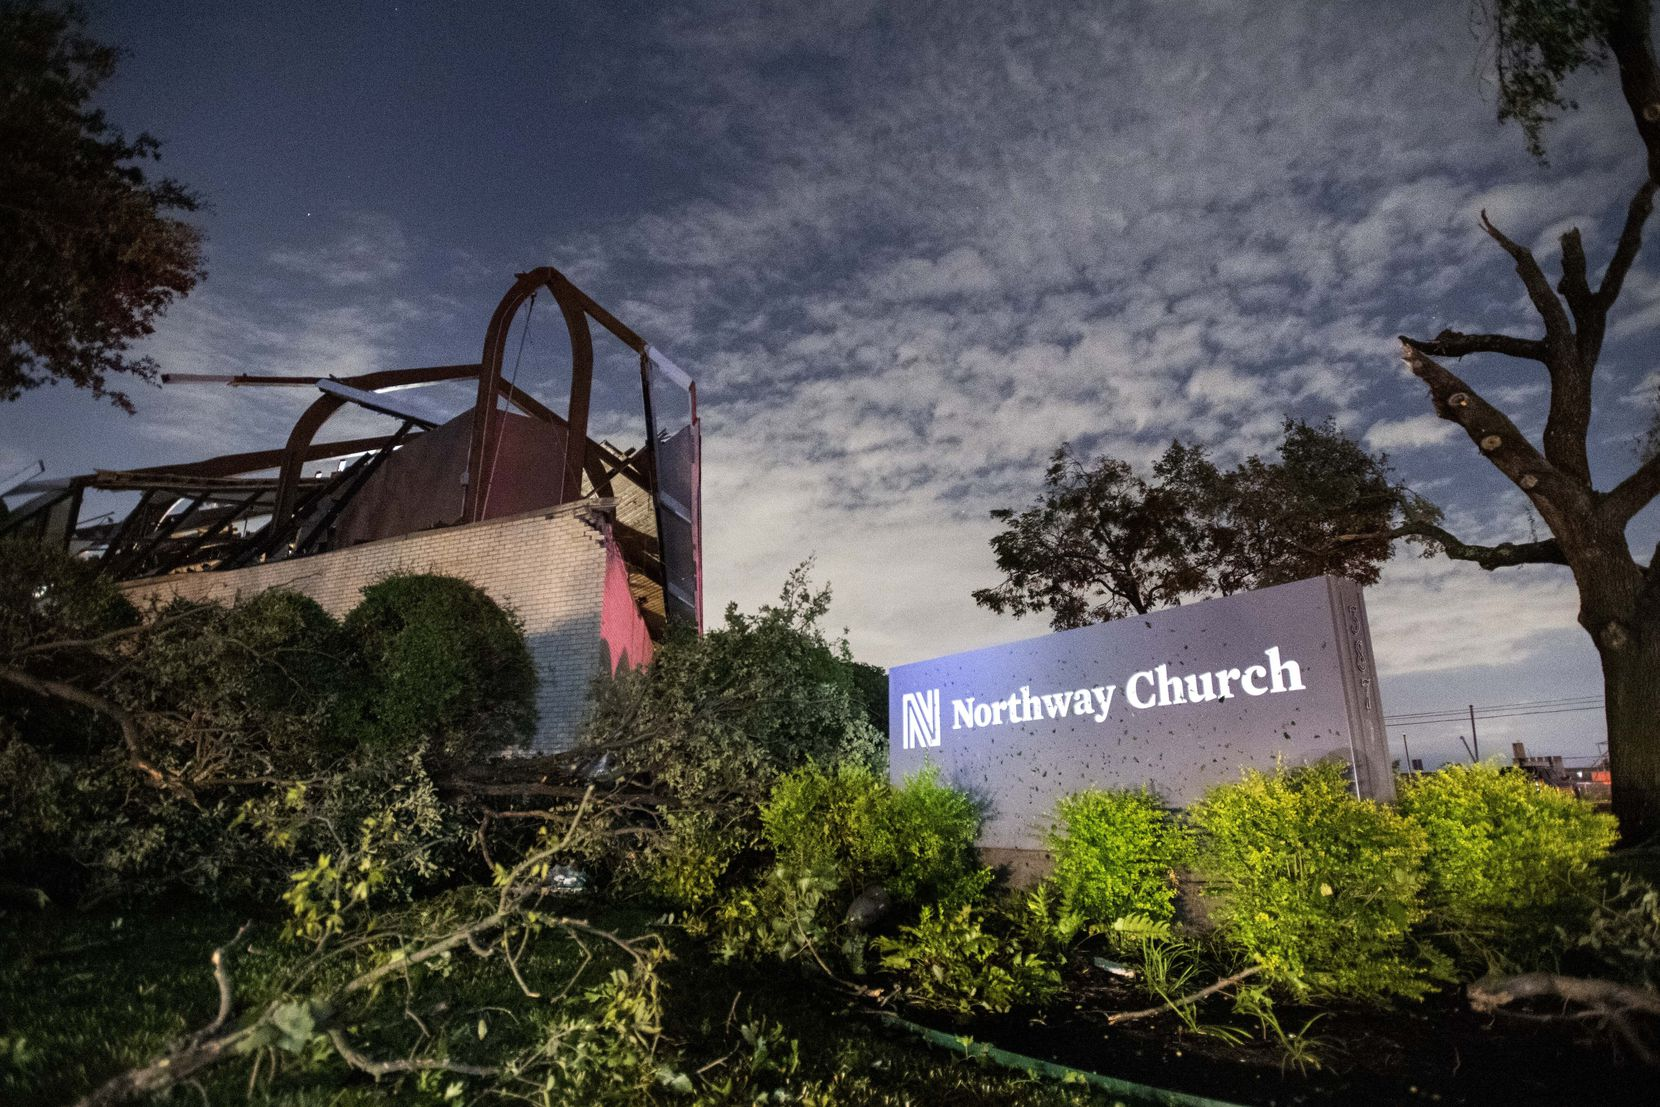 This is how Northway Church looked in the moments after the storm. Today it doesn't look much different, except the trees have been clear. In coming days the northwest Dallas mainstay will be demolished because of the damage caused by the Oct. 20 tornado.